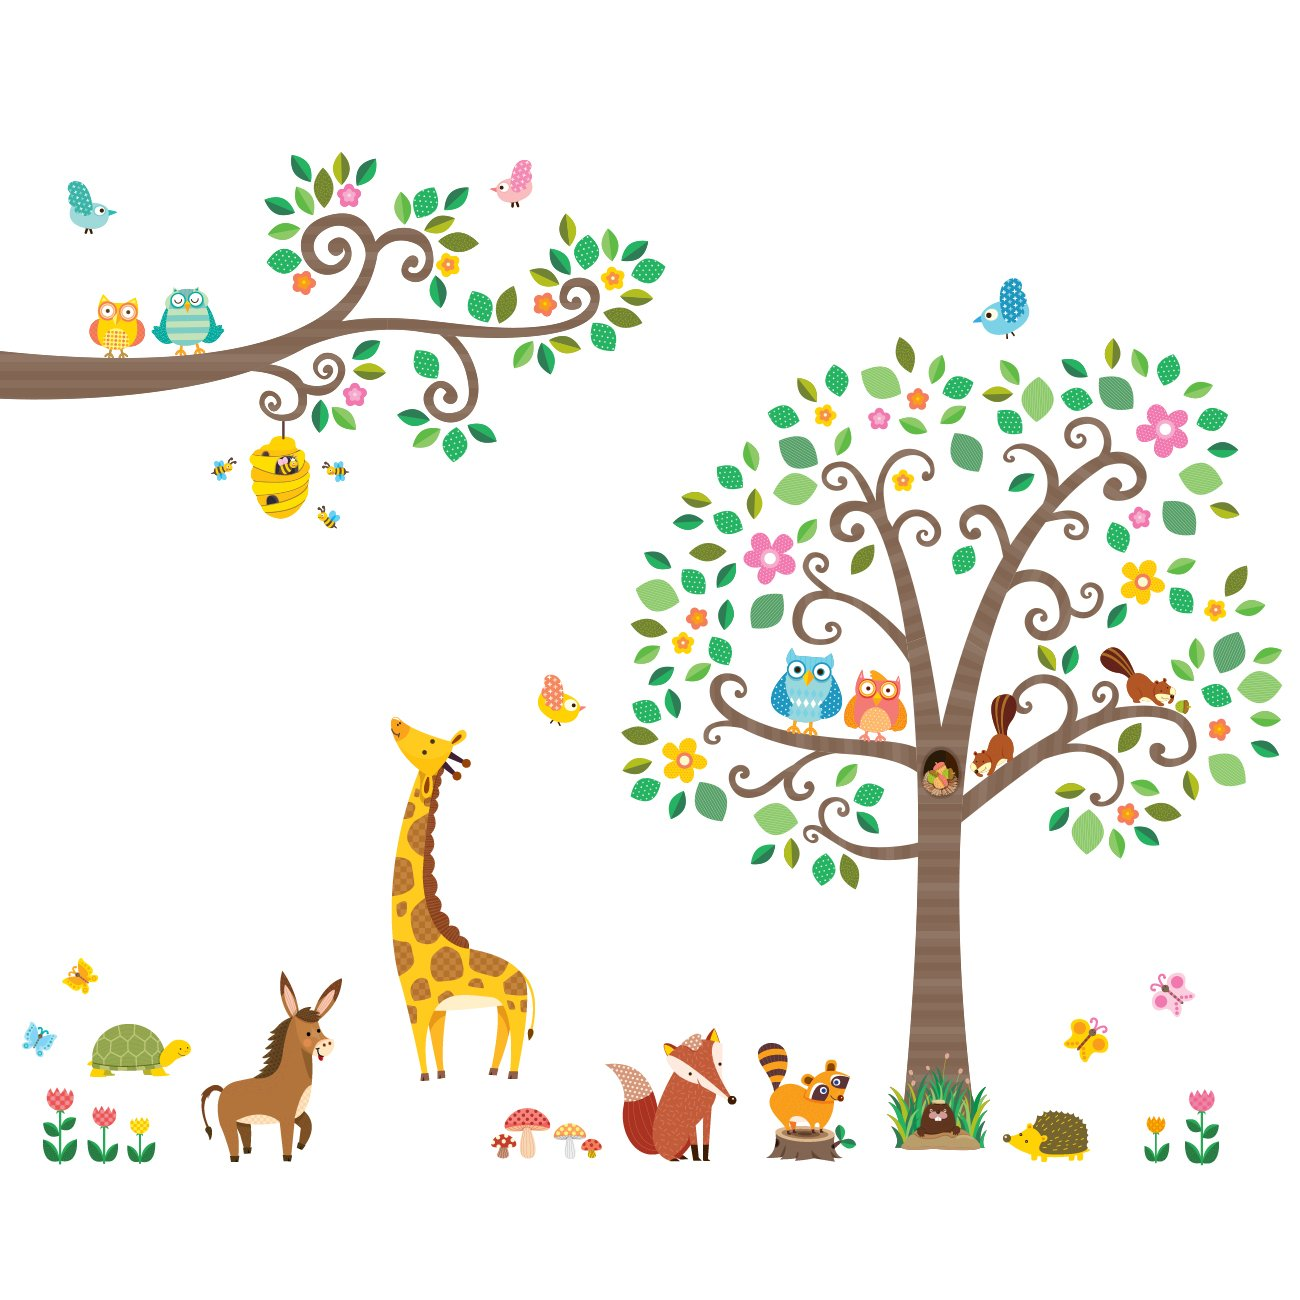 Decowall DM-1502P1512 Large Scroll Tree and Branches with Animals Kids Wall Stickers Wall Decals Peel and Stick Removable Wall Stickers for Kids Nursery Bedroom Living Room